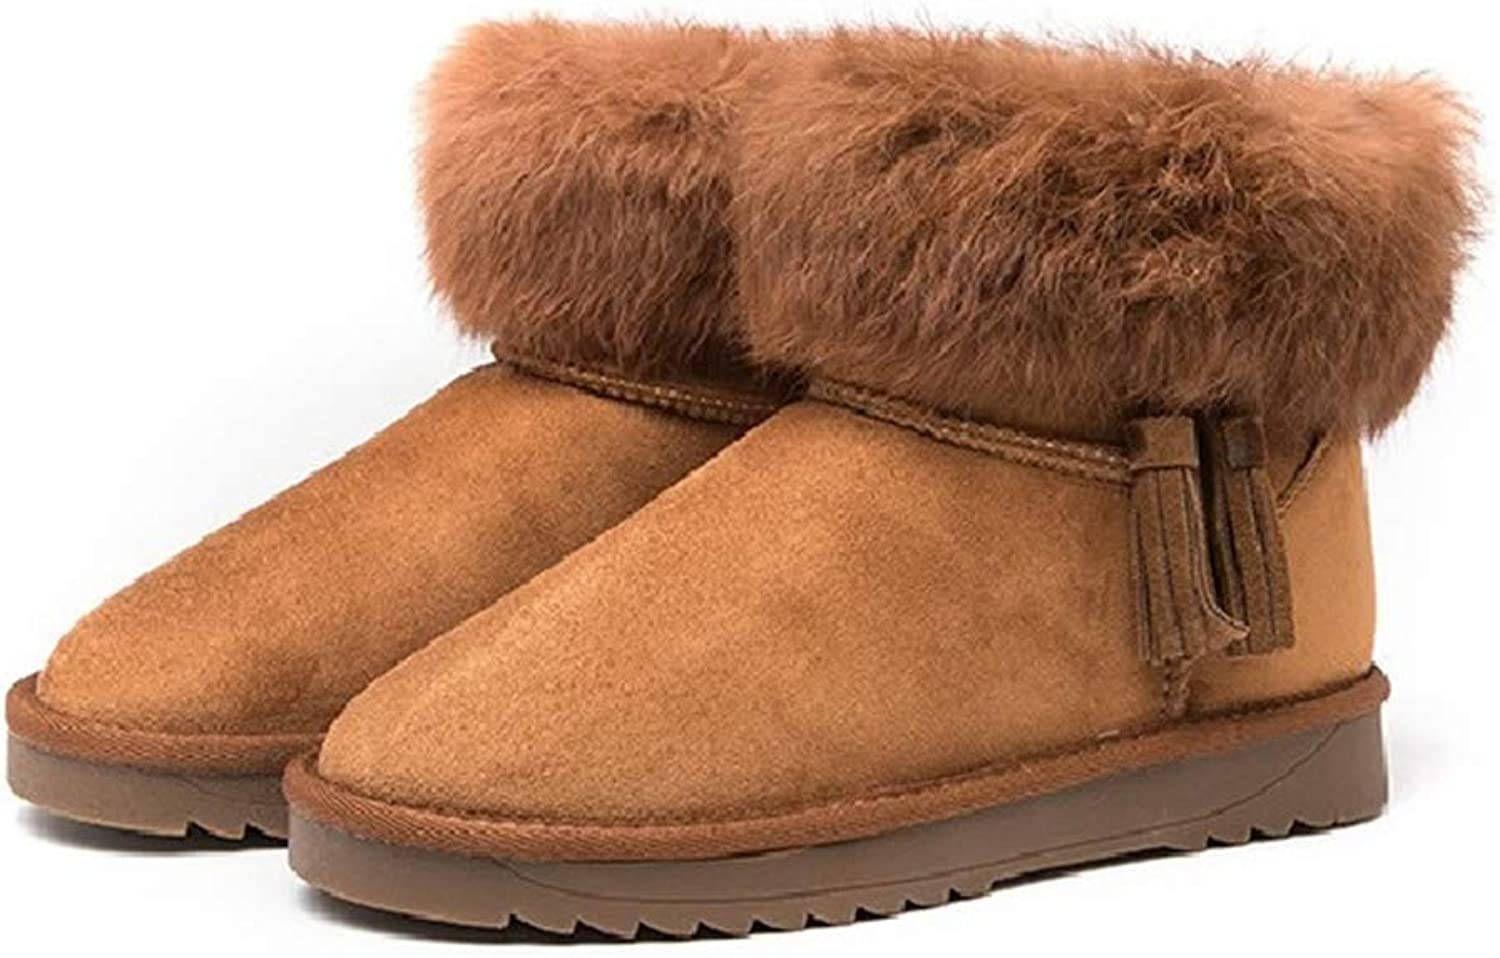 Kyle Walsh Pa Women Snow Boots Warm Fur Tassel Soft Comfortable Ankle Booties Female Winter Flats shoes